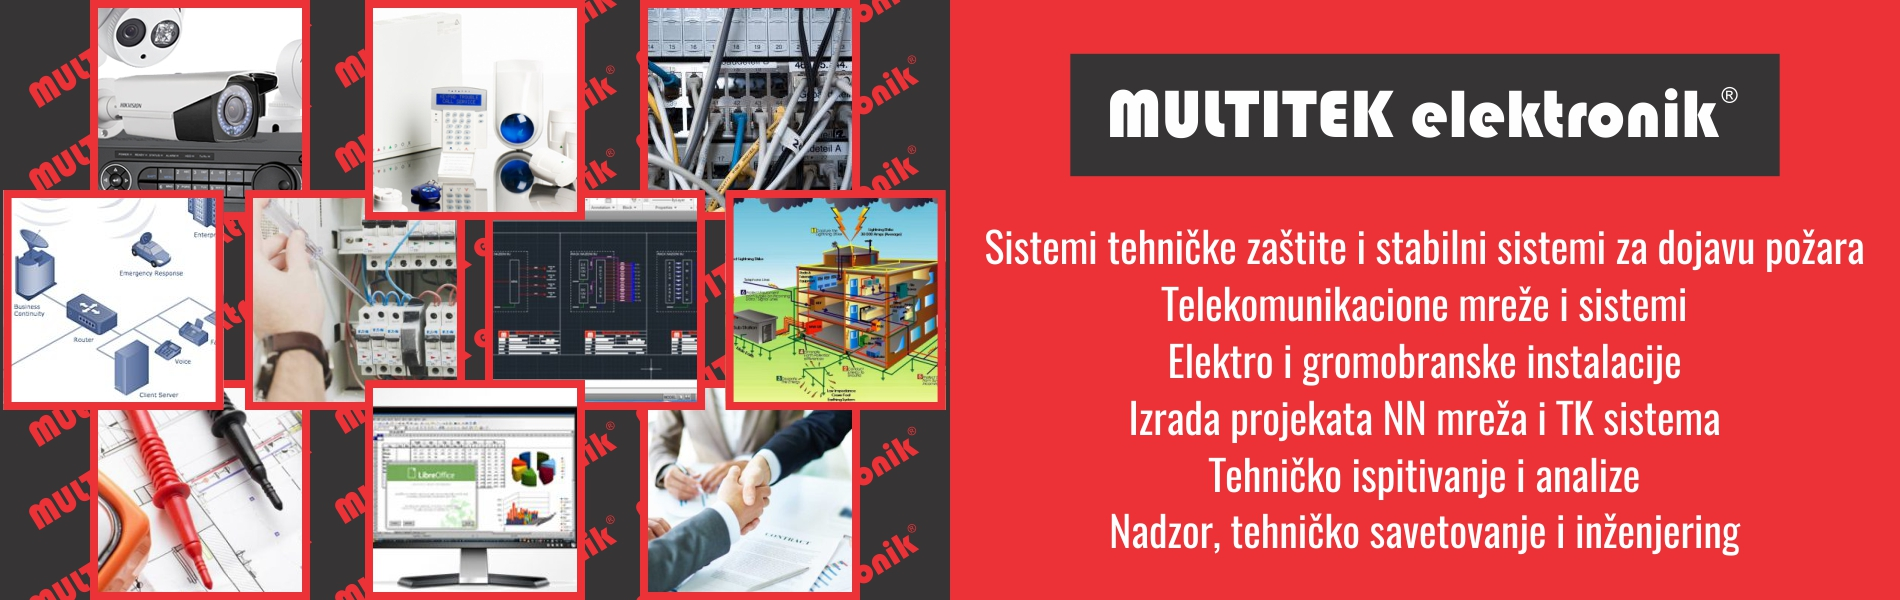 Multitek elektronik 2